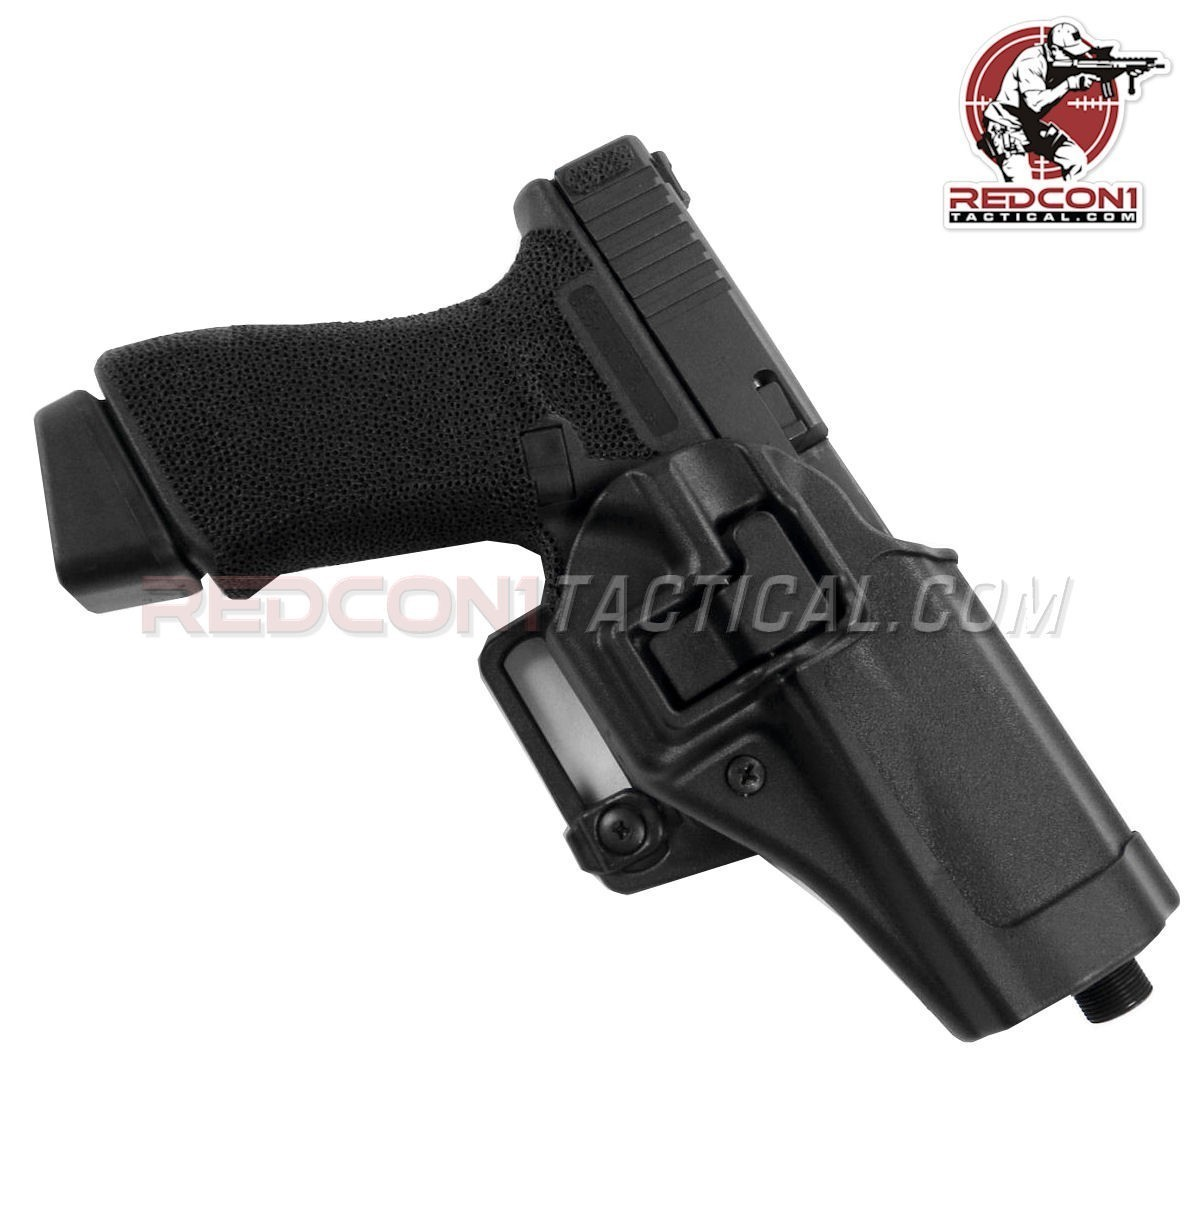 BlackHawk CQC Serpa Size 13 for Glock 20/21/37 & S&W M&P Black